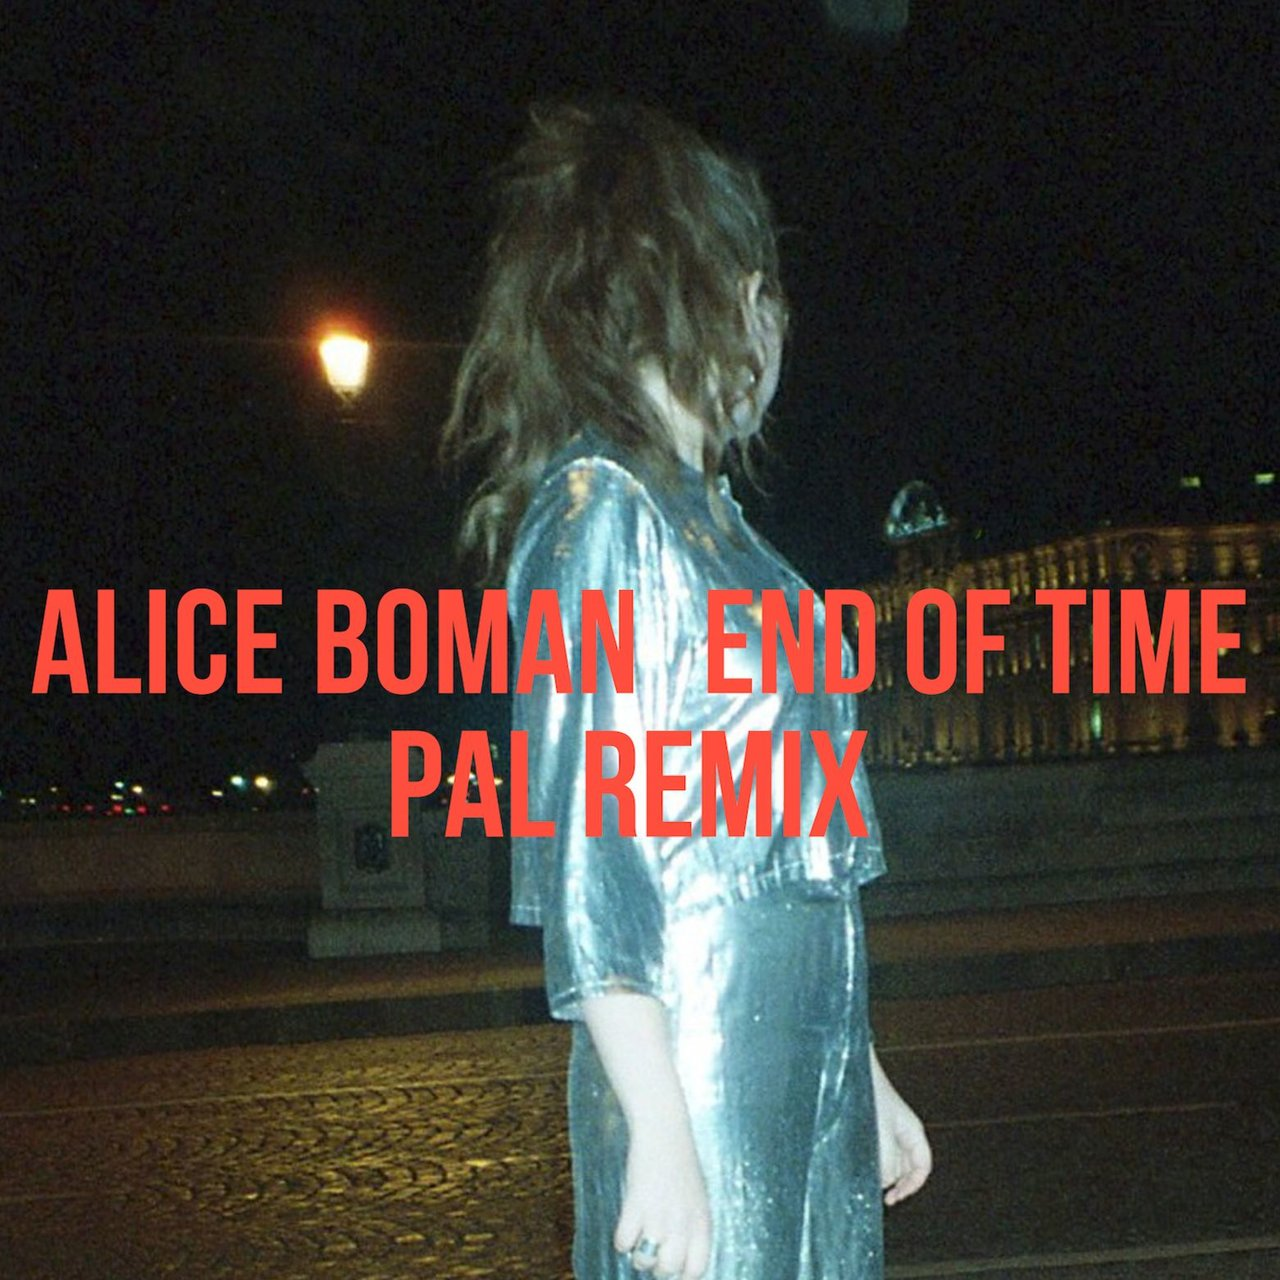 End Of Time (PAL Remix)